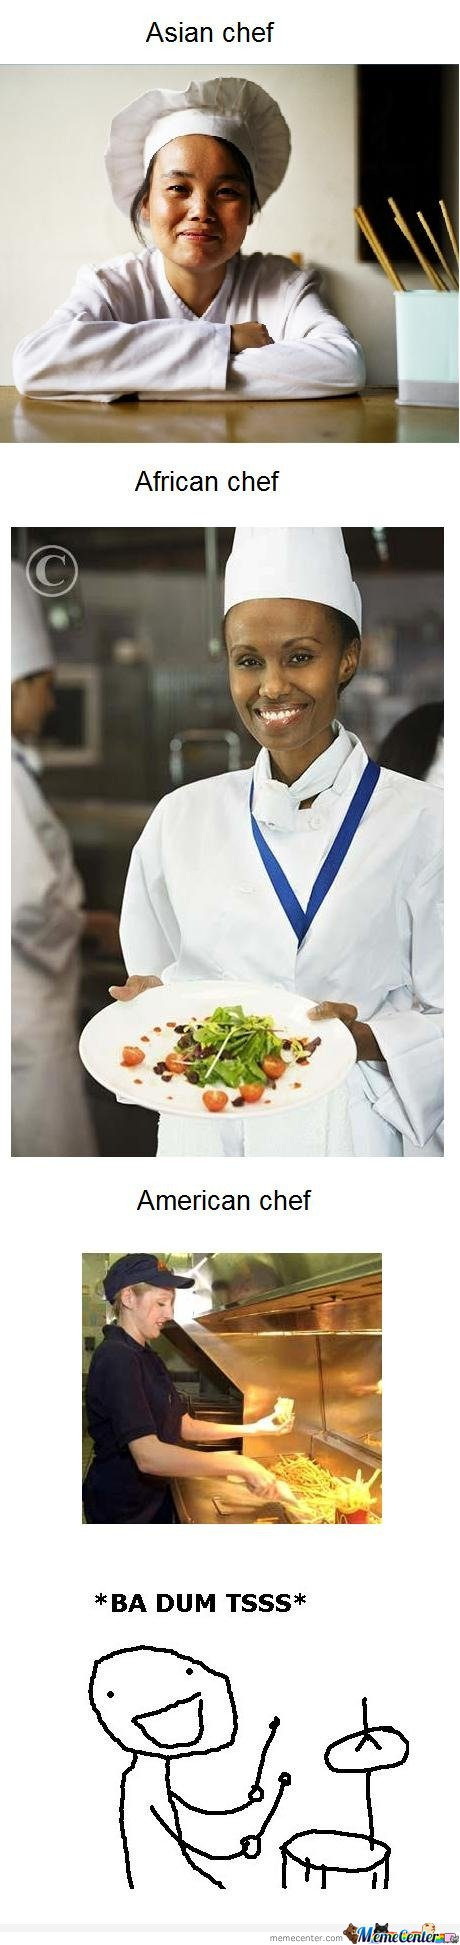 Asian chef vs African chef vs American chef